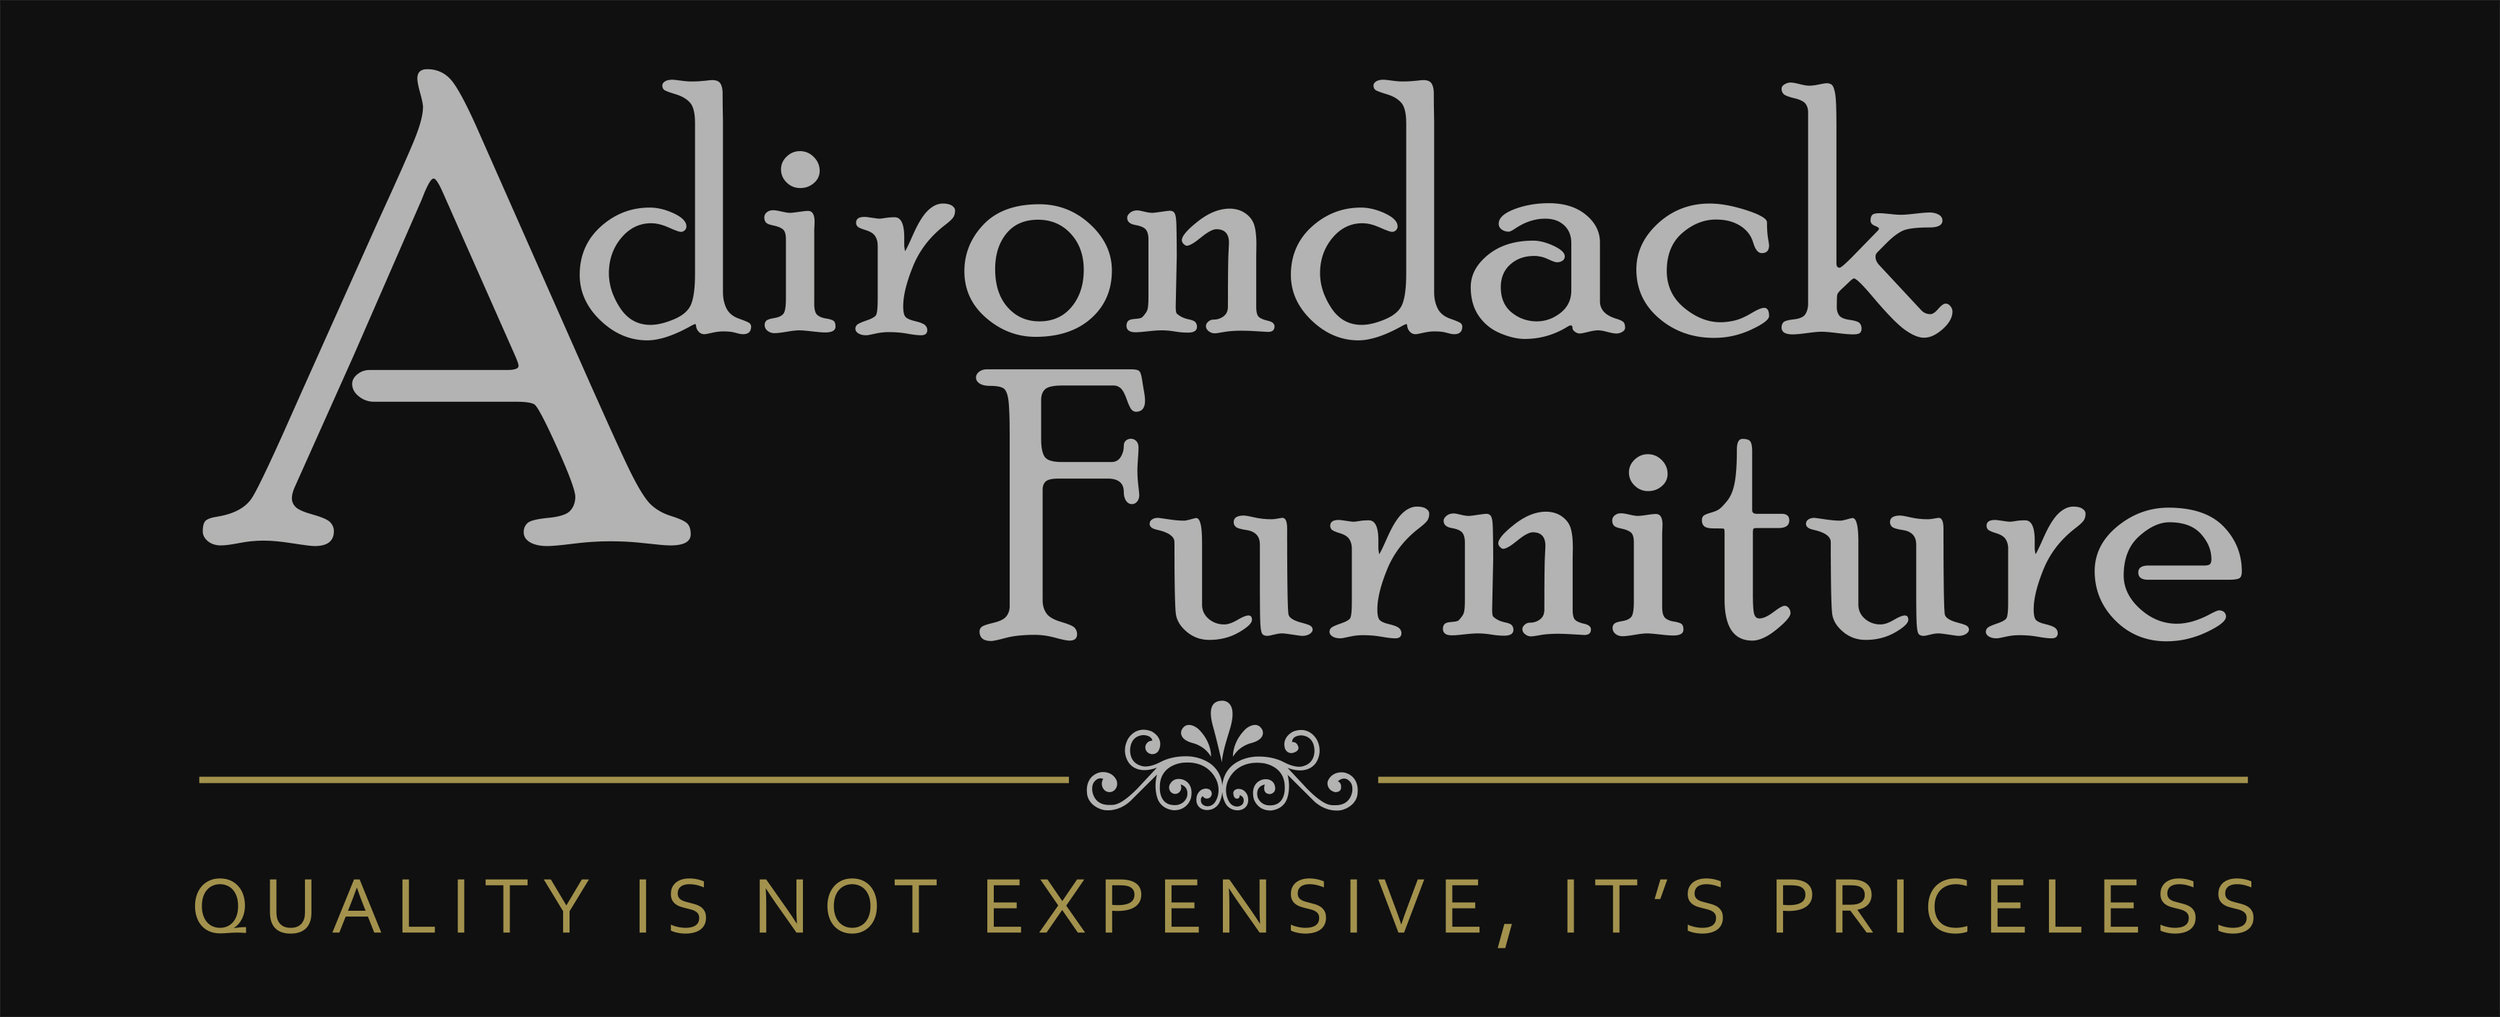 Adirondack Furniture logo 4-25-18.jpg